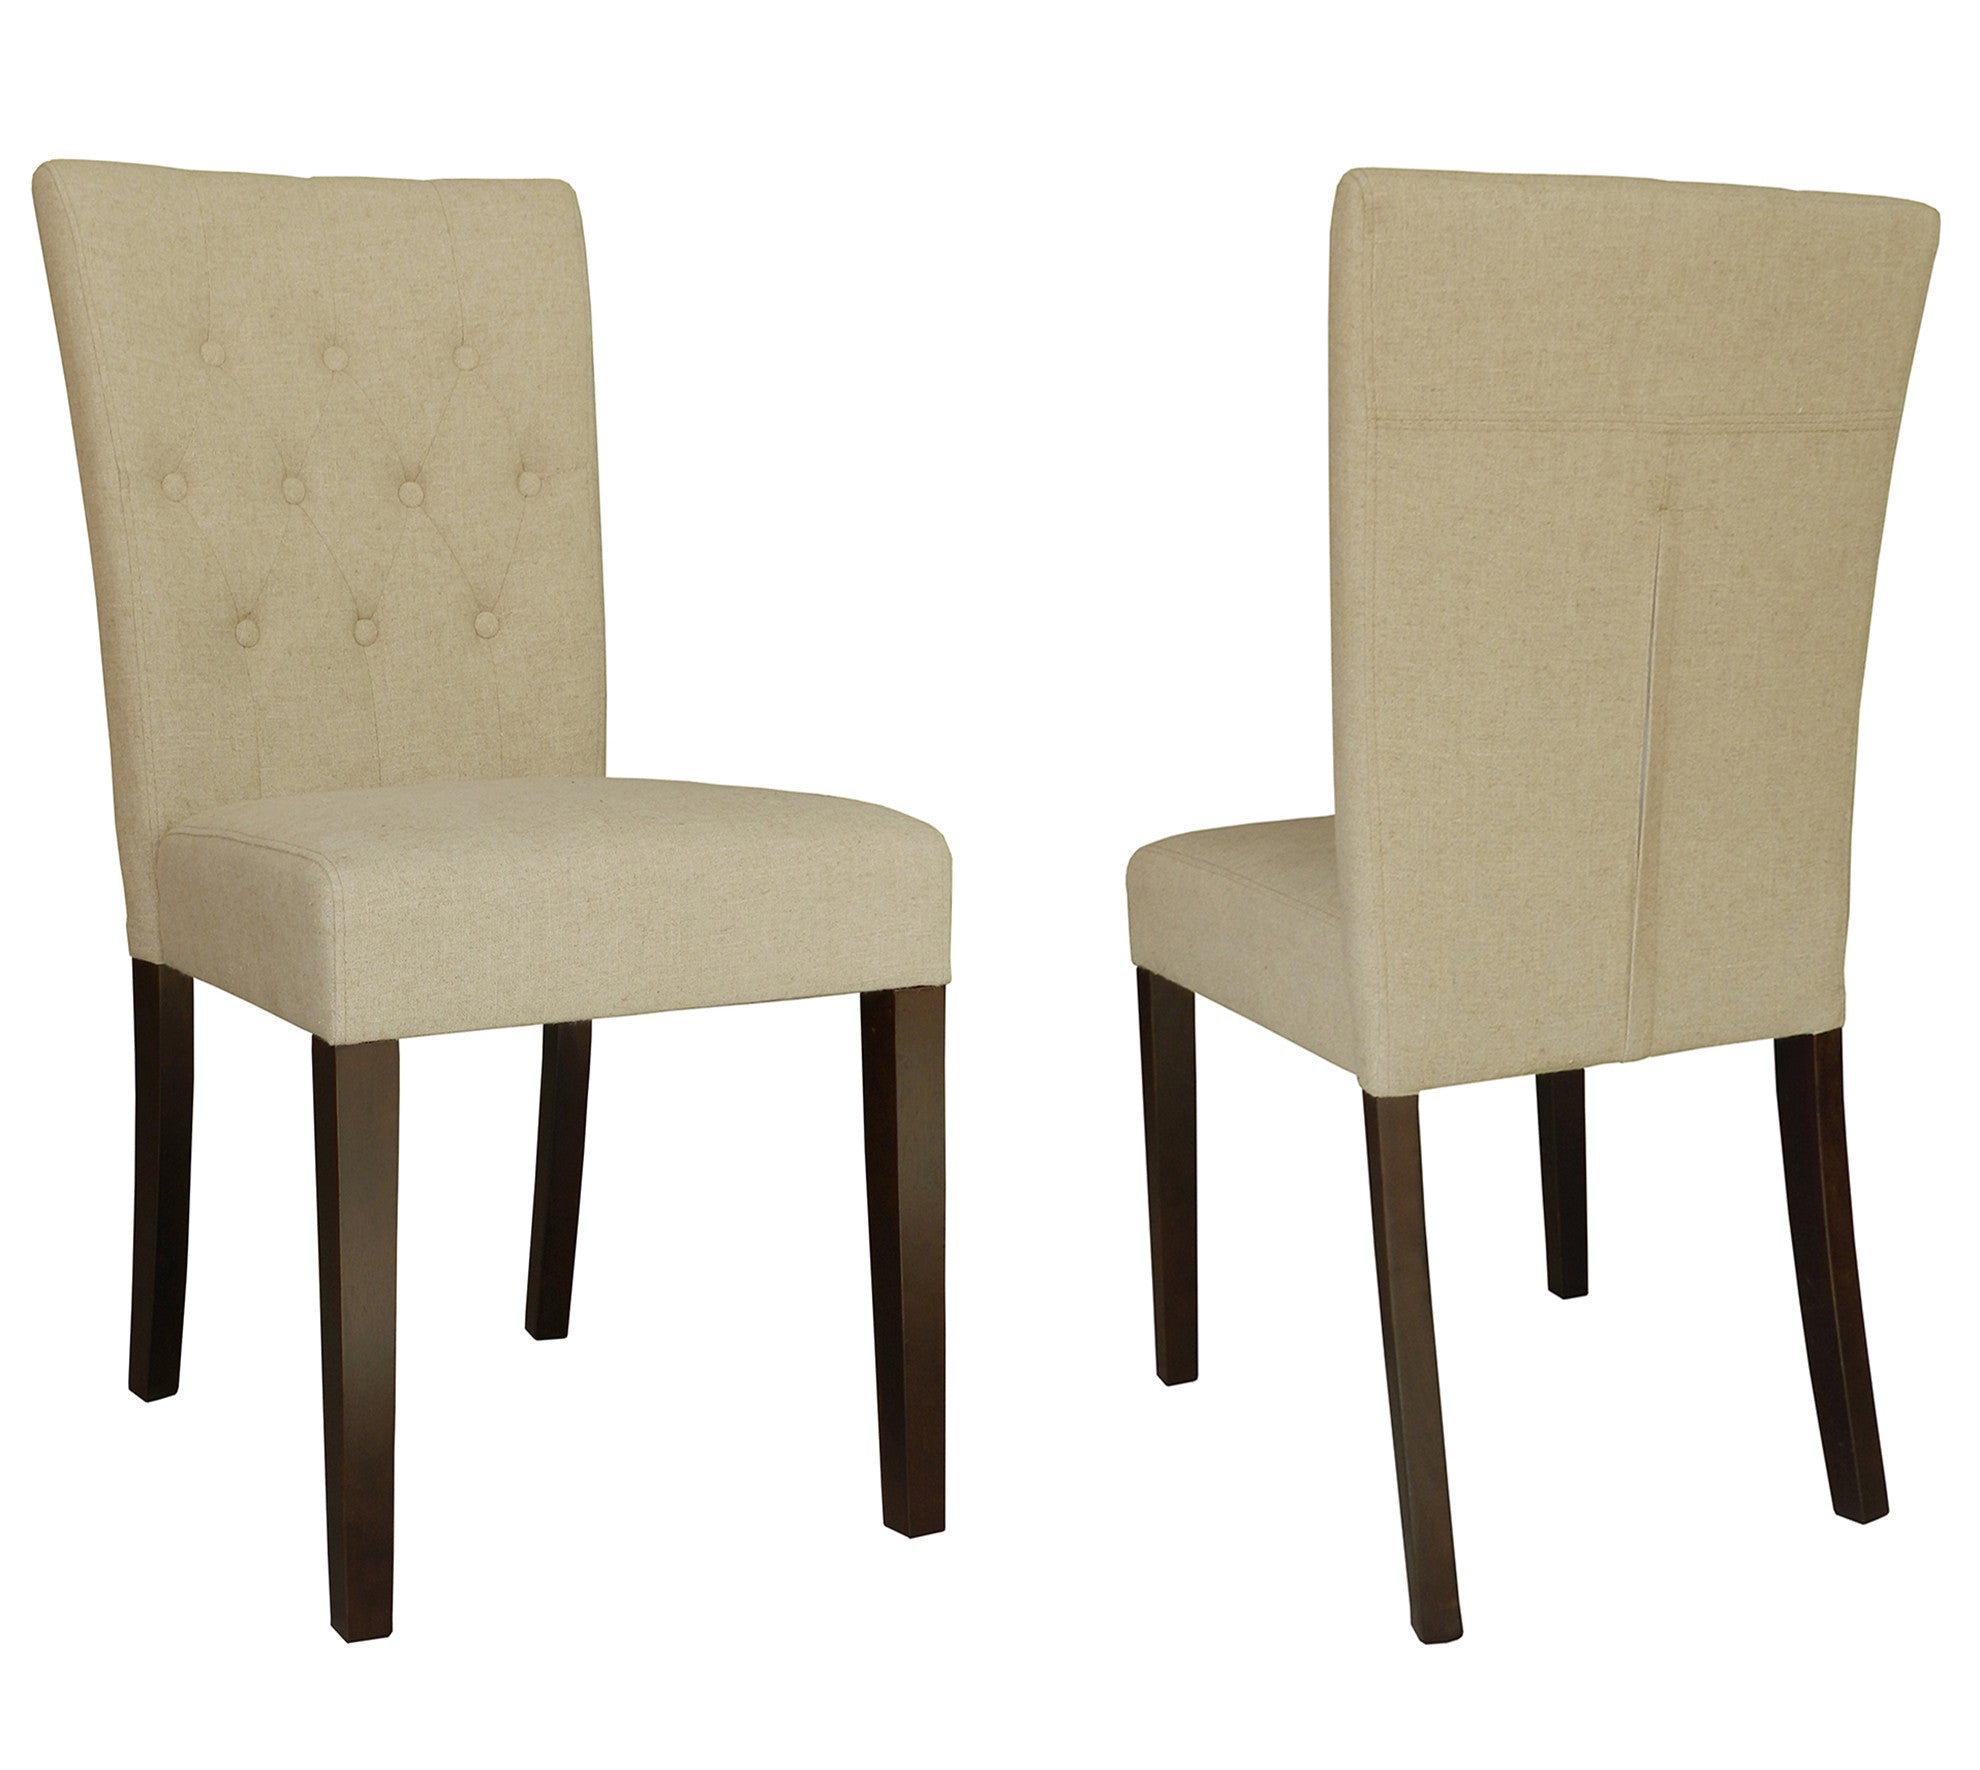 Emma 2pkg - price is for two chairs